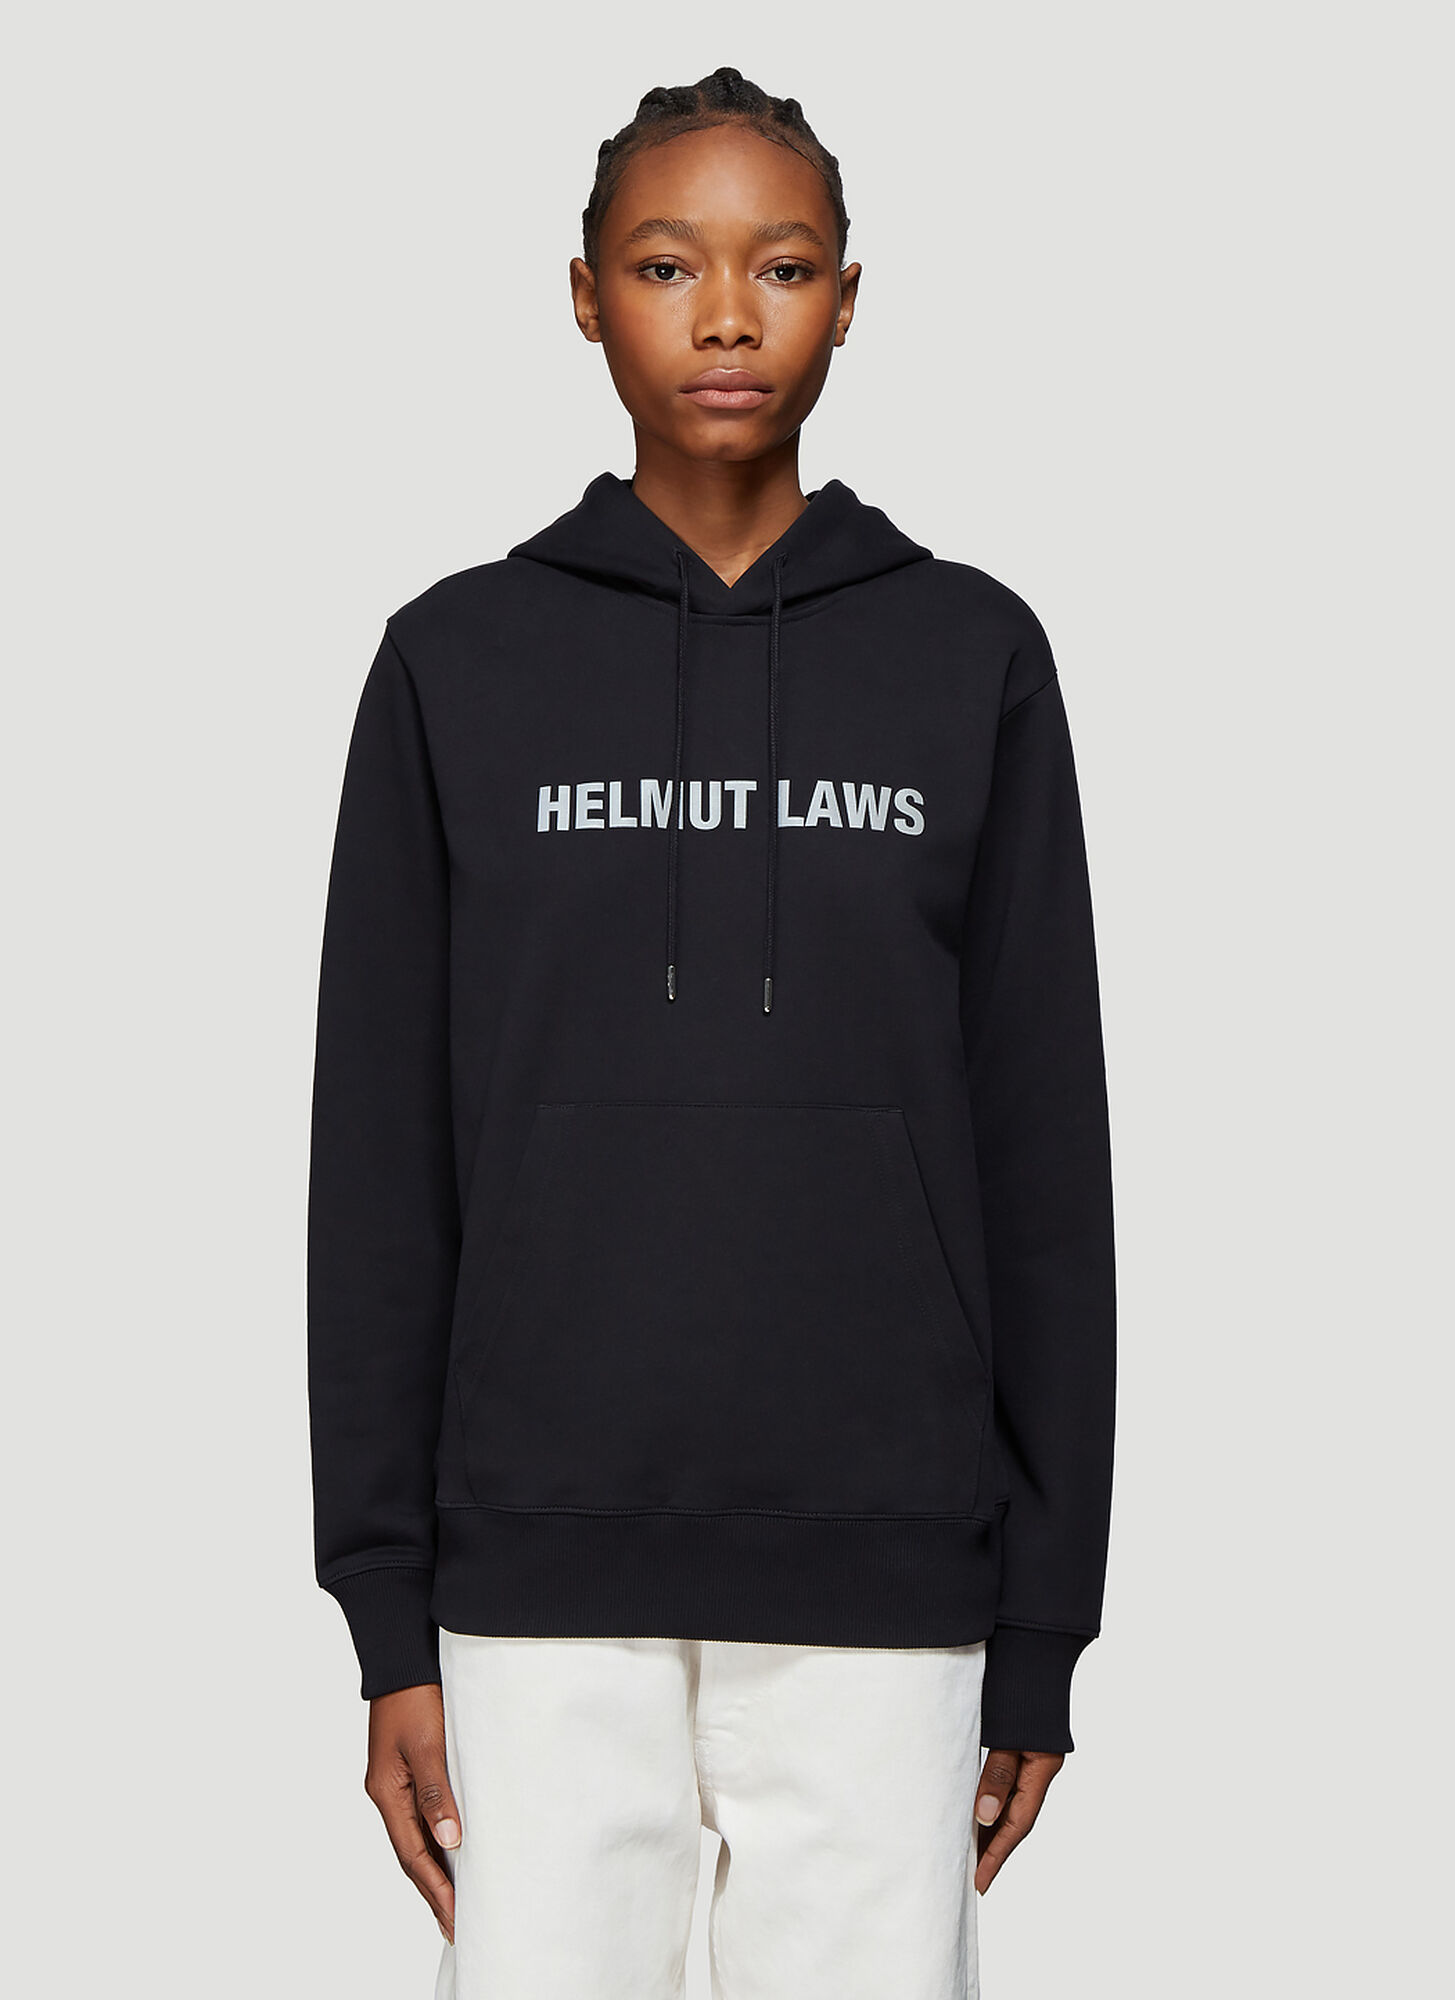 Helmut Lang Helmut Laws Sweatshirt in Black